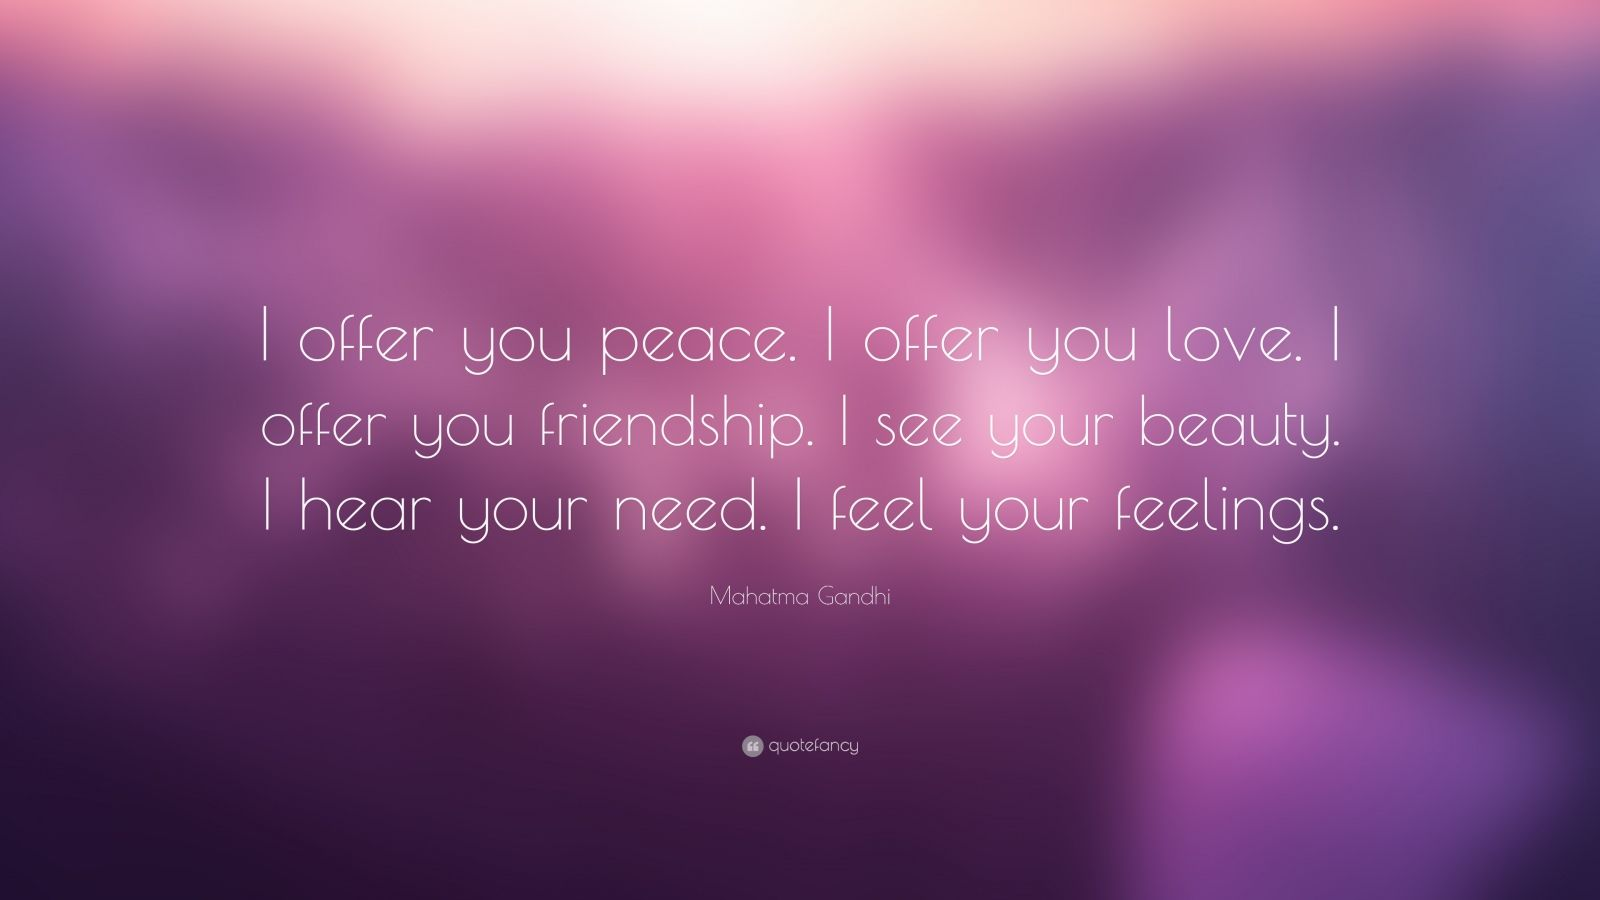 """Mahatma Gandhi Quote: """"I offer you peace. I offer you love. I offer you friendship. I see your beauty. I hear your need. I feel your feelings."""""""